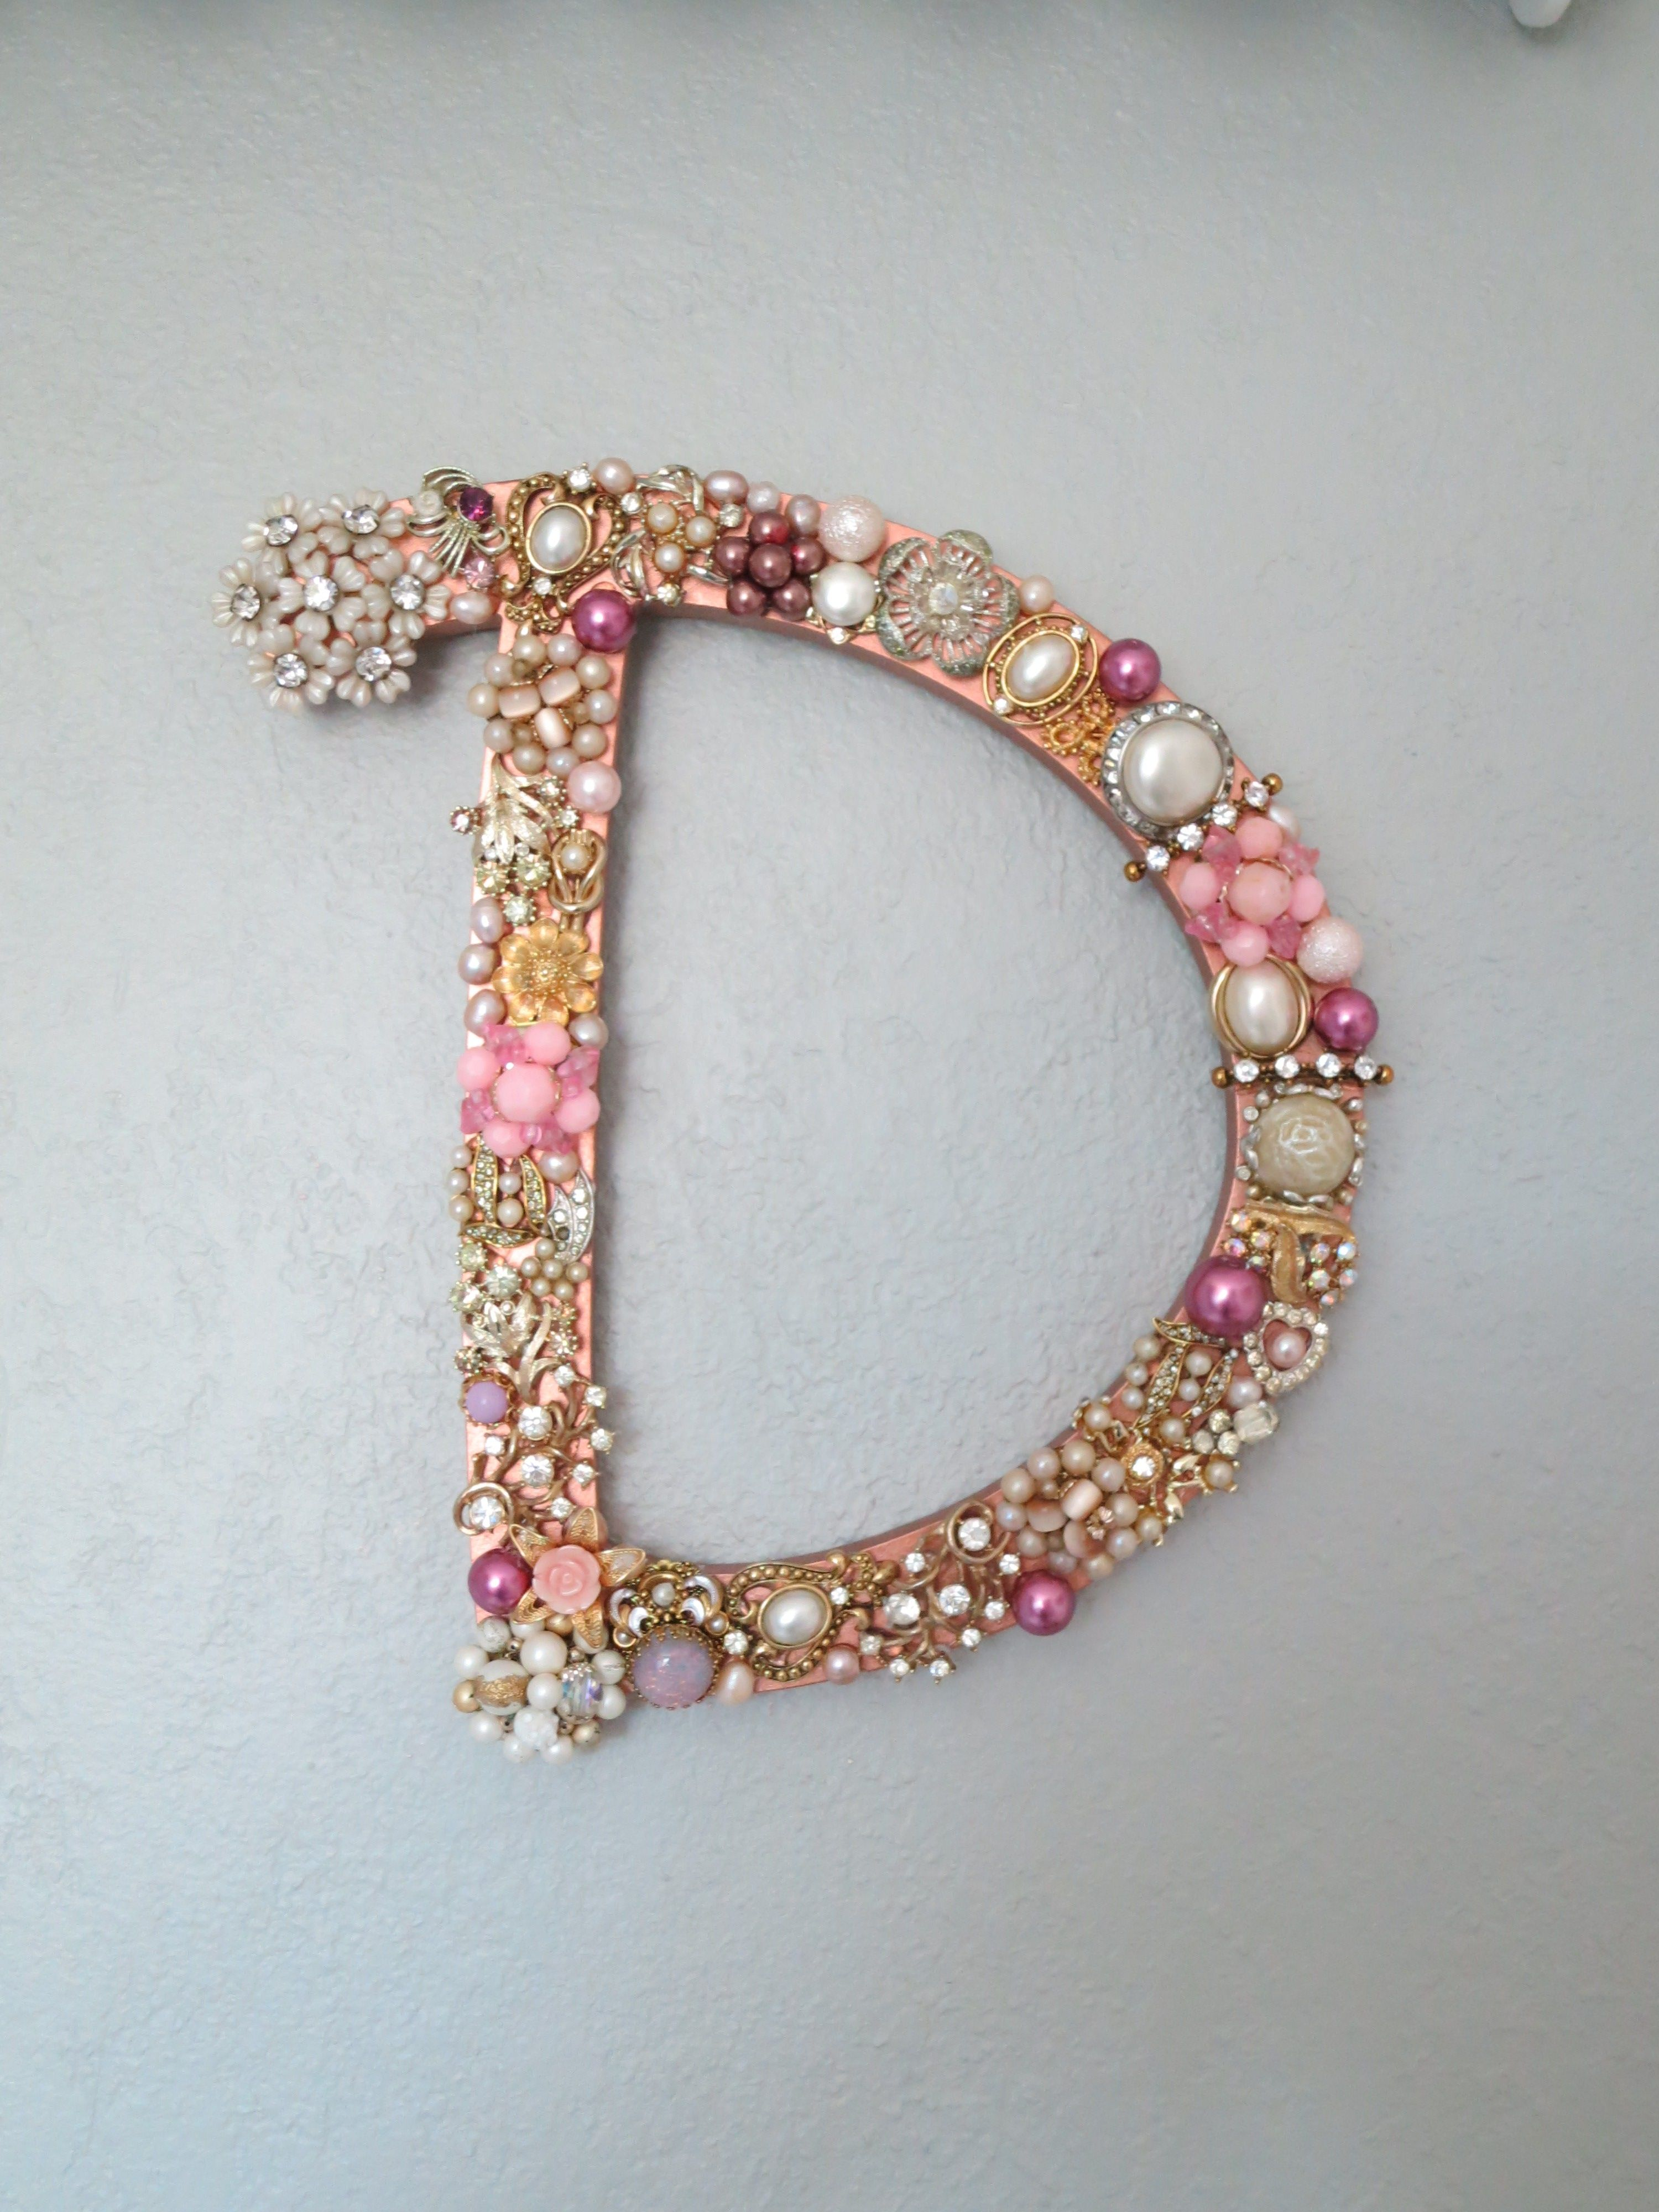 """Make an """"R"""" with old antique brooches for something at the wedding. Maybe the ice cream station if no cake?"""